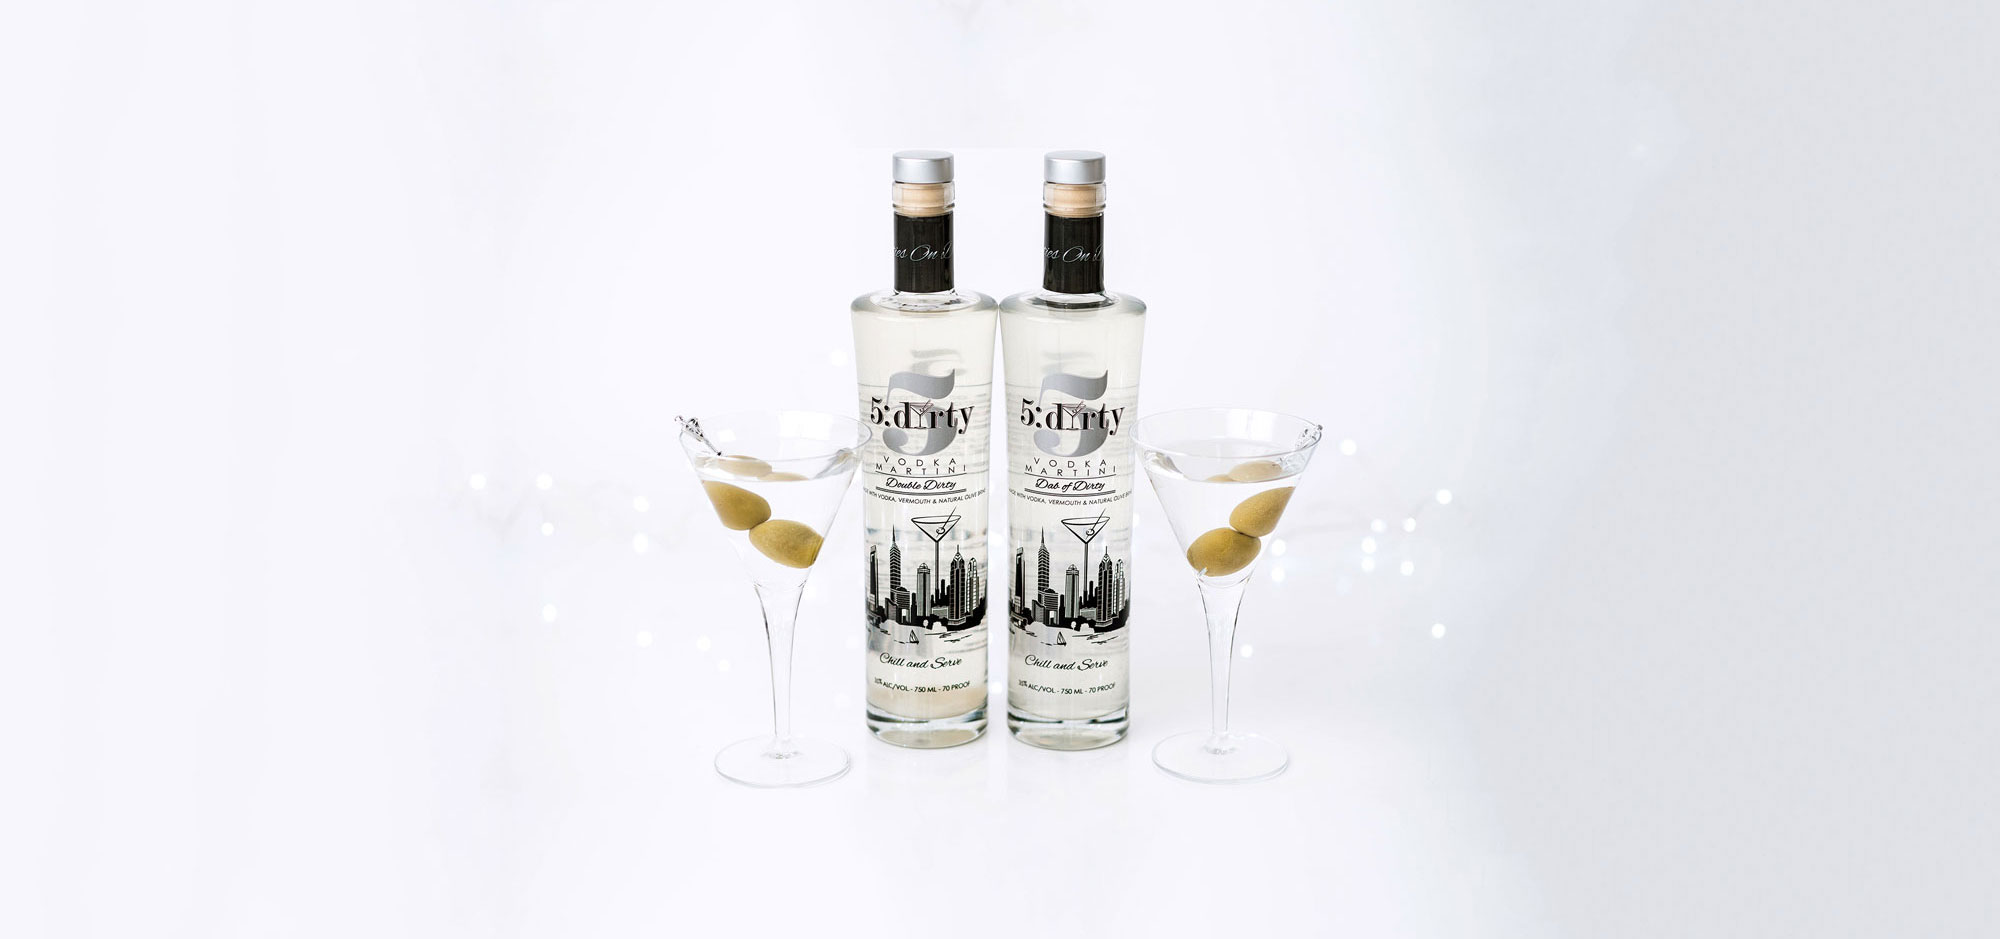 Premium pre-made dirty martinis from 5Dirty